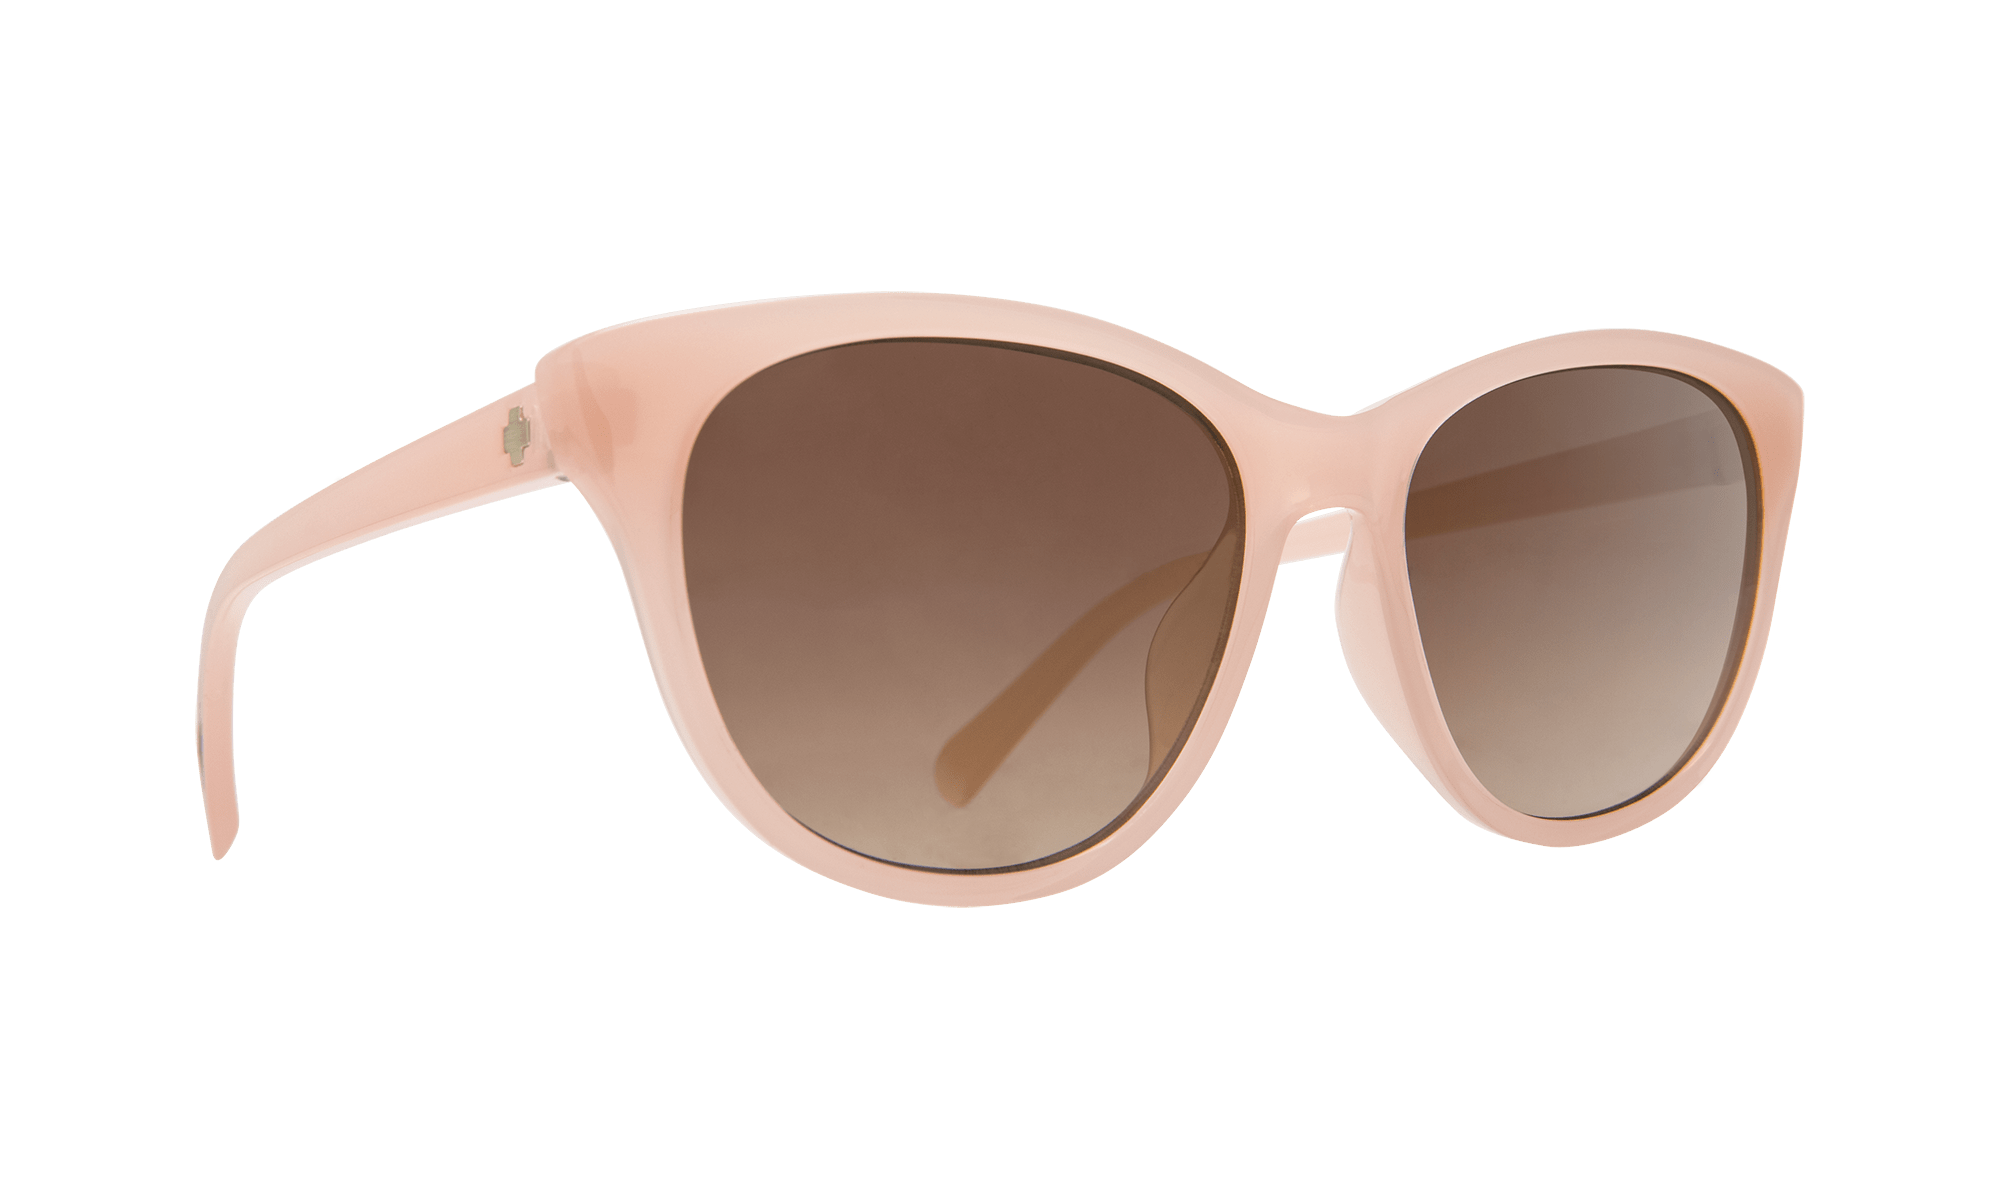 SPY Spritzer  Sunglasses  Bronze Fade  55-17-140